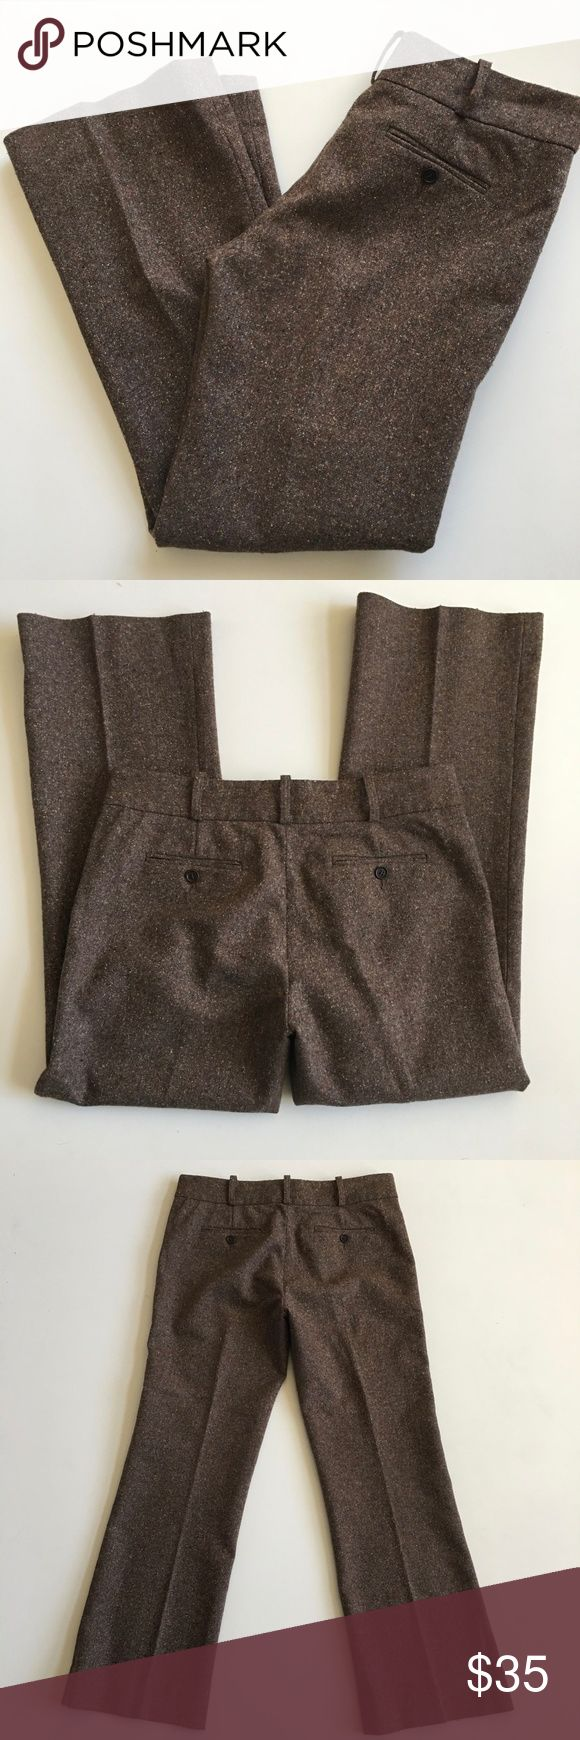 BCBGMaxazria Brown Wool Blend Tweed Trousers 8 Brand:  BCBGMaxazria  Gently Used…